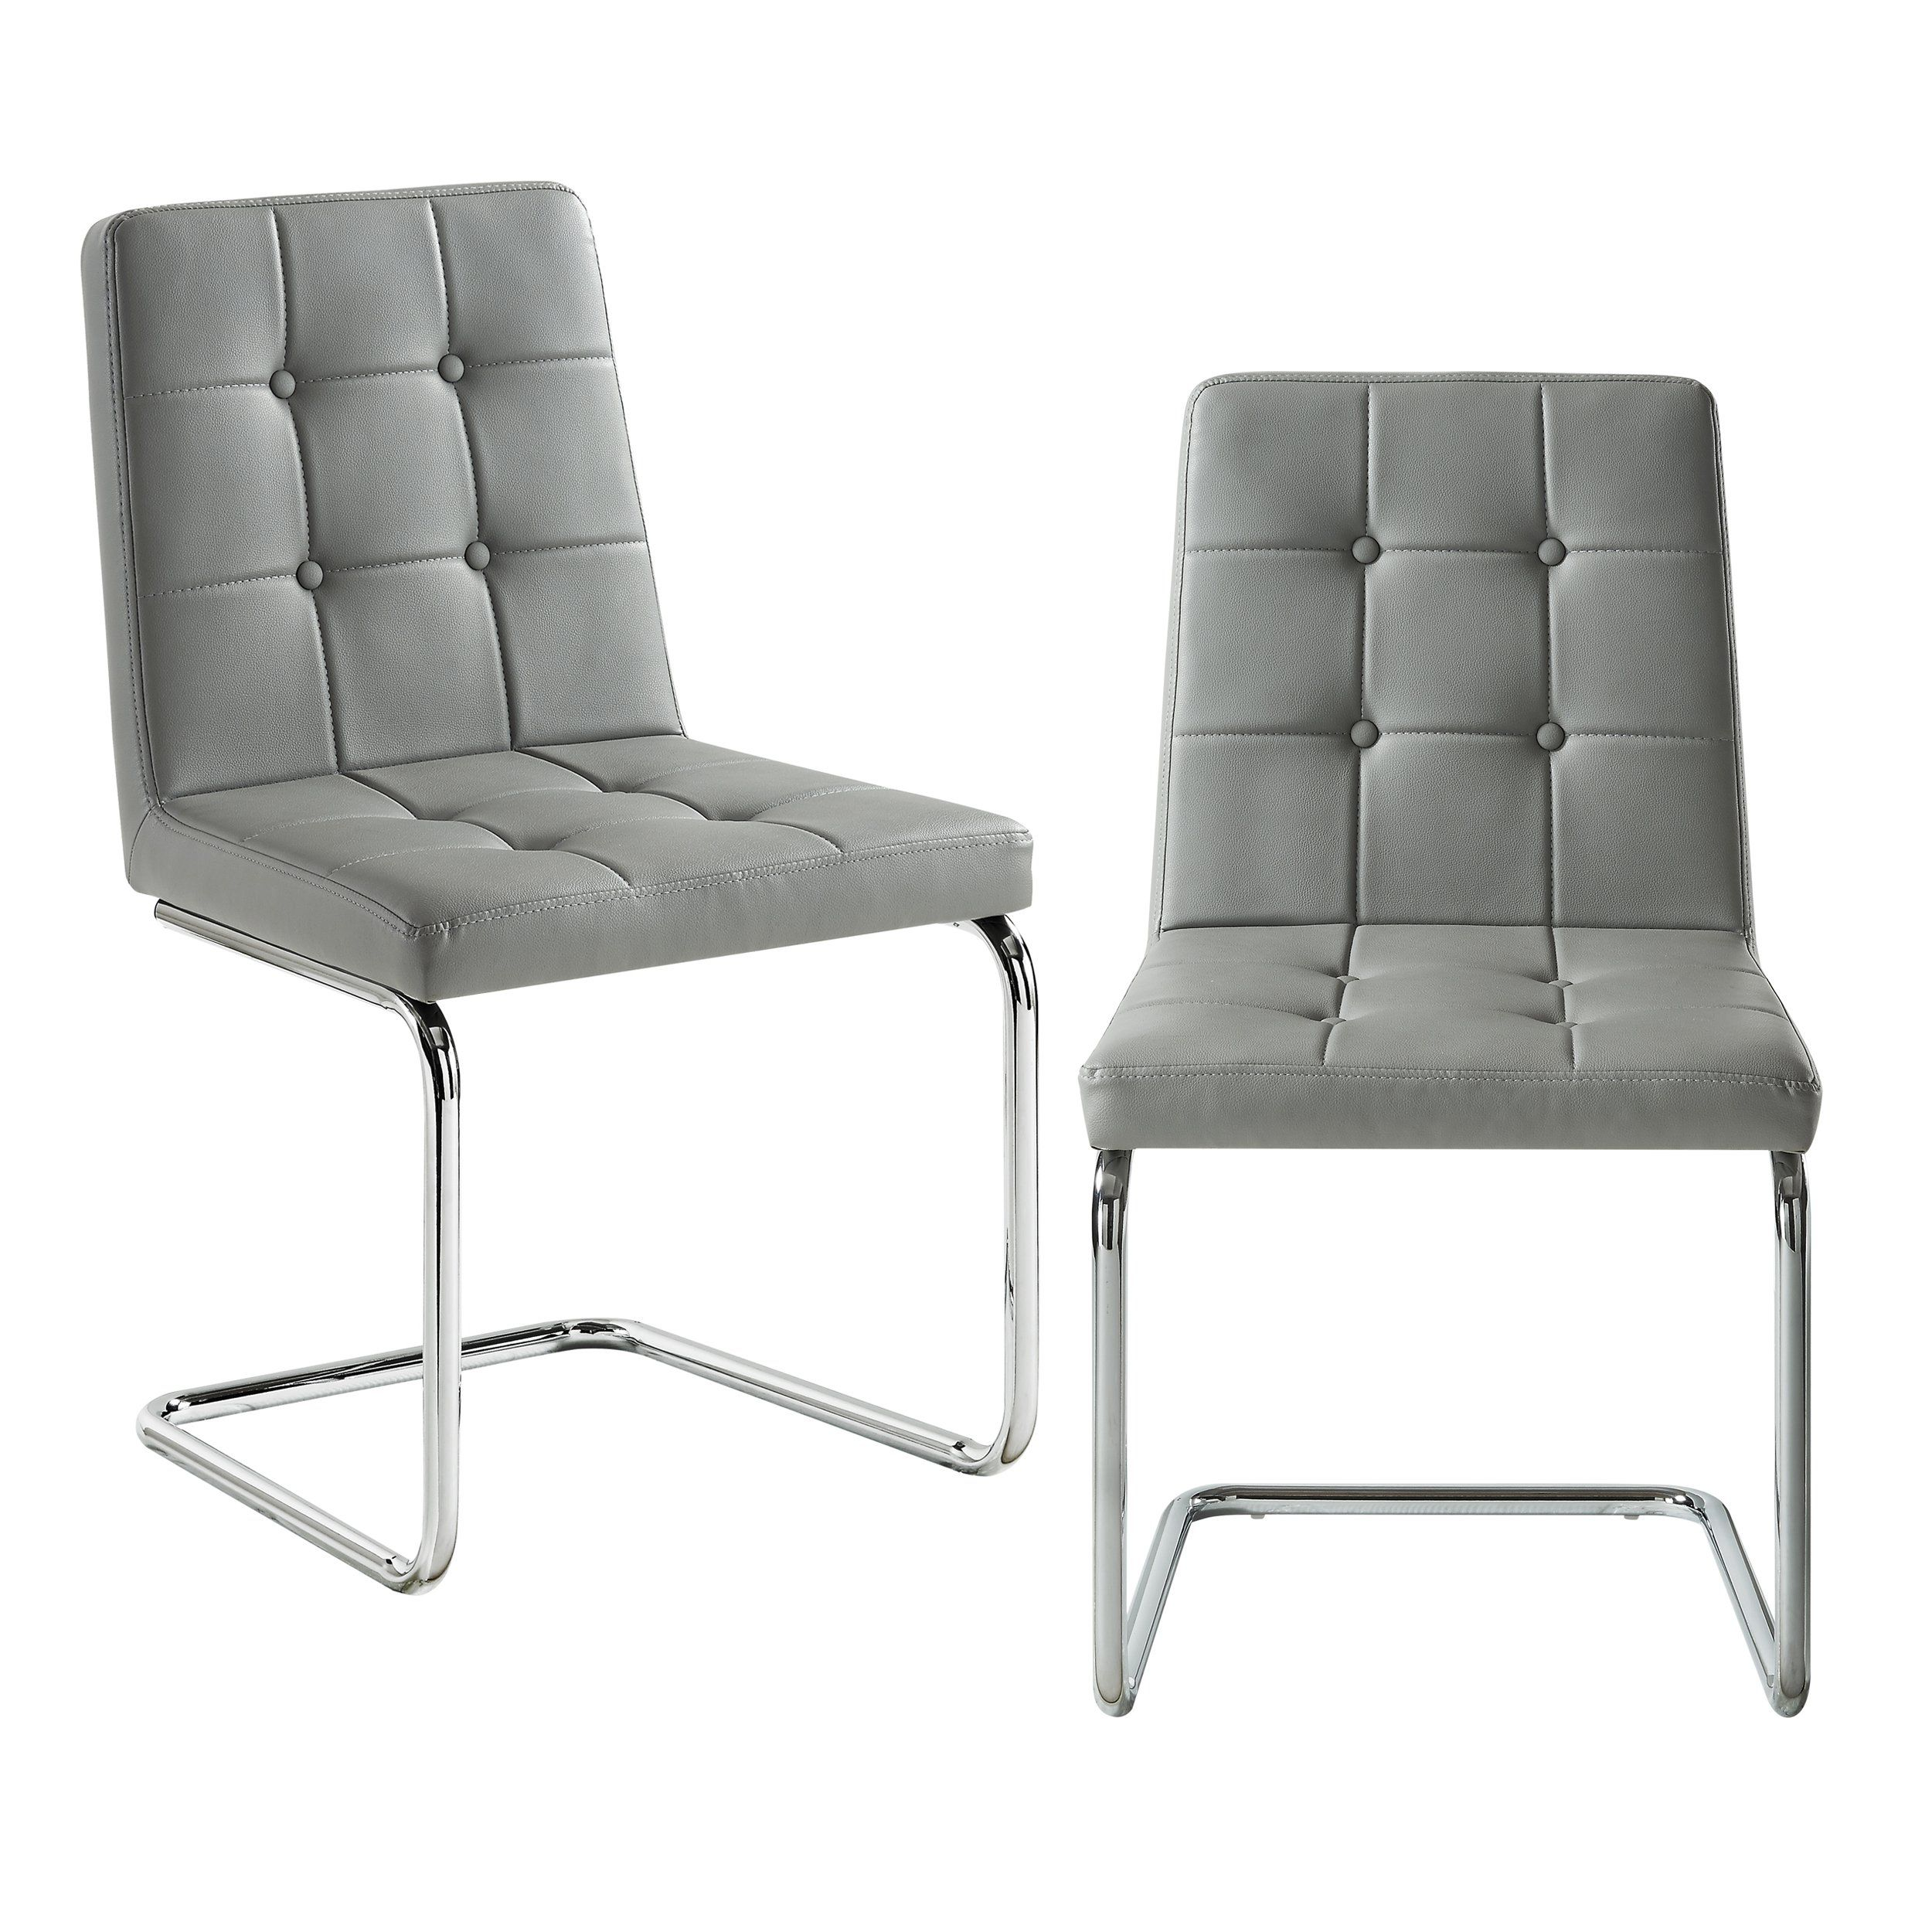 Clyde Grey Leather Dining Chair Set Of 2 Button Tufted Chrome Frame